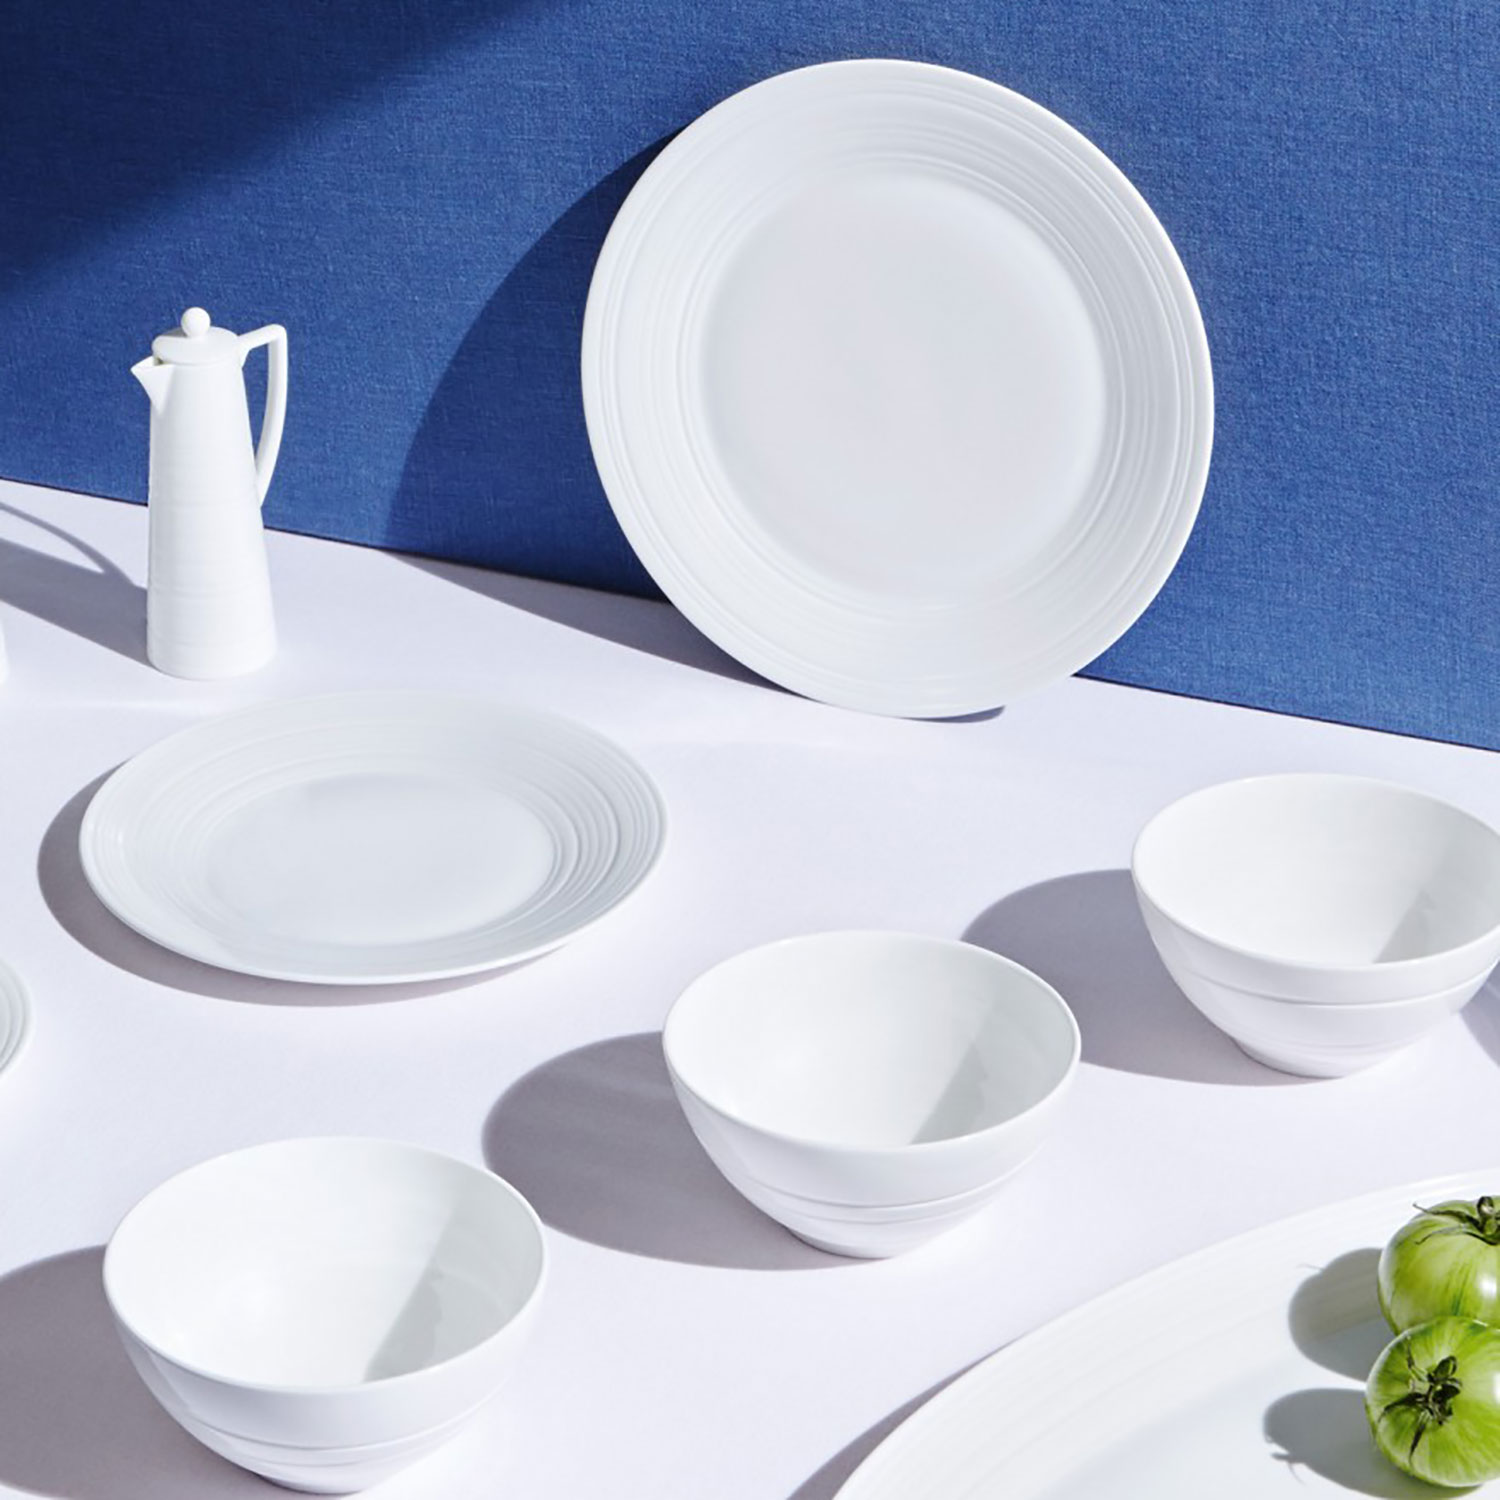 4 Piece Place Setting - Smooth